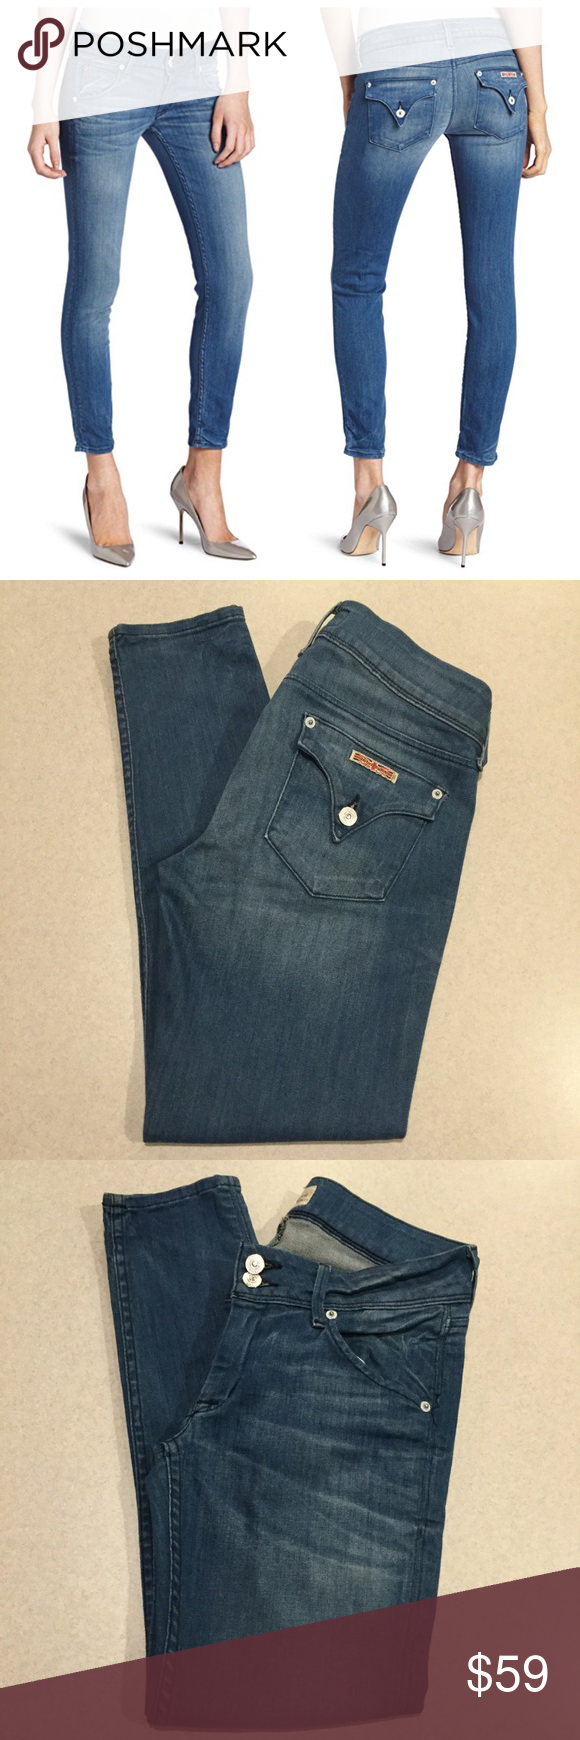 """Hudson Jeans 27X27 Collin Skinny Crop In Aruba! Hudson Jeans Collin skinny crop Aruba wash! (Modeled pictures are of exact fit and wash) Size 27 27 inch skinny fit inseam 15.5"""" across waist, 7.5"""" rise A pretty vibrant blue denim Only worn a few times Perfect condition!   All of my items come from a smoke free, pet free home and are authenticity guaranteed. Please ask any questions, no returns for fit issues. 10 1/28 Hudson Jeans Jeans Skinny"""